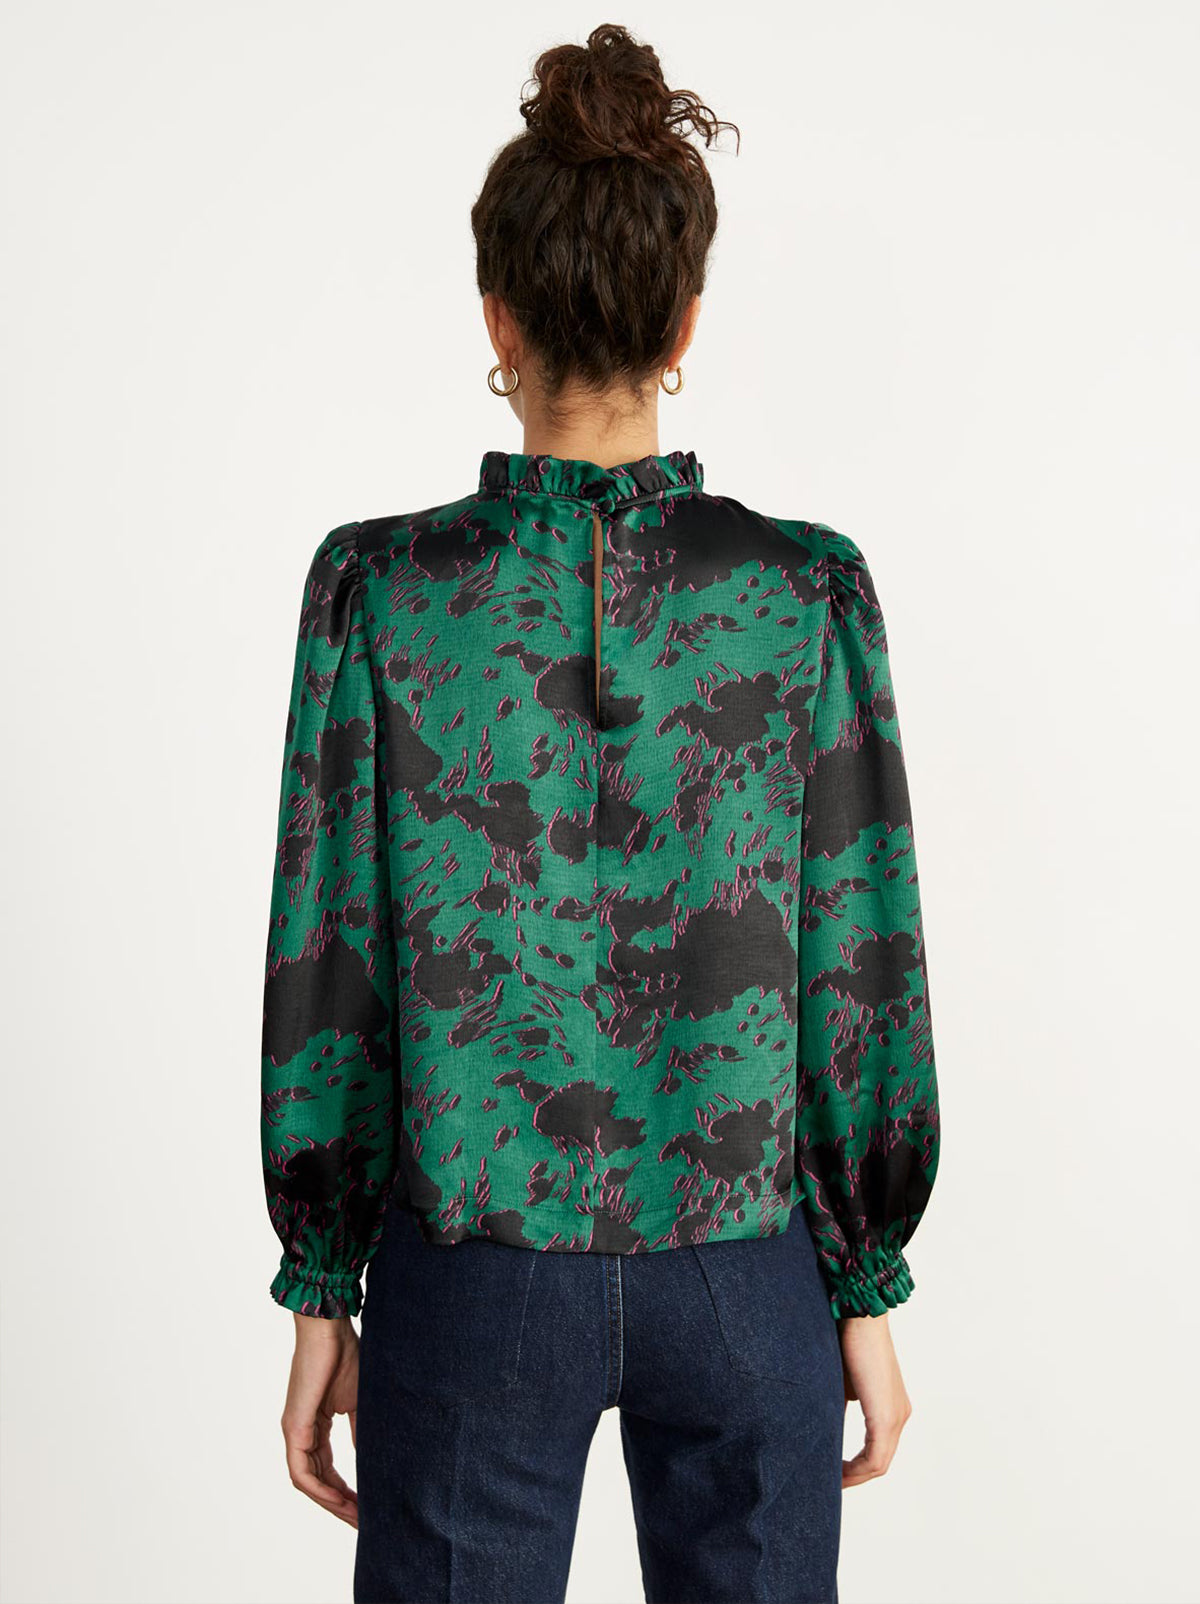 Teresa Green Cow Print Top